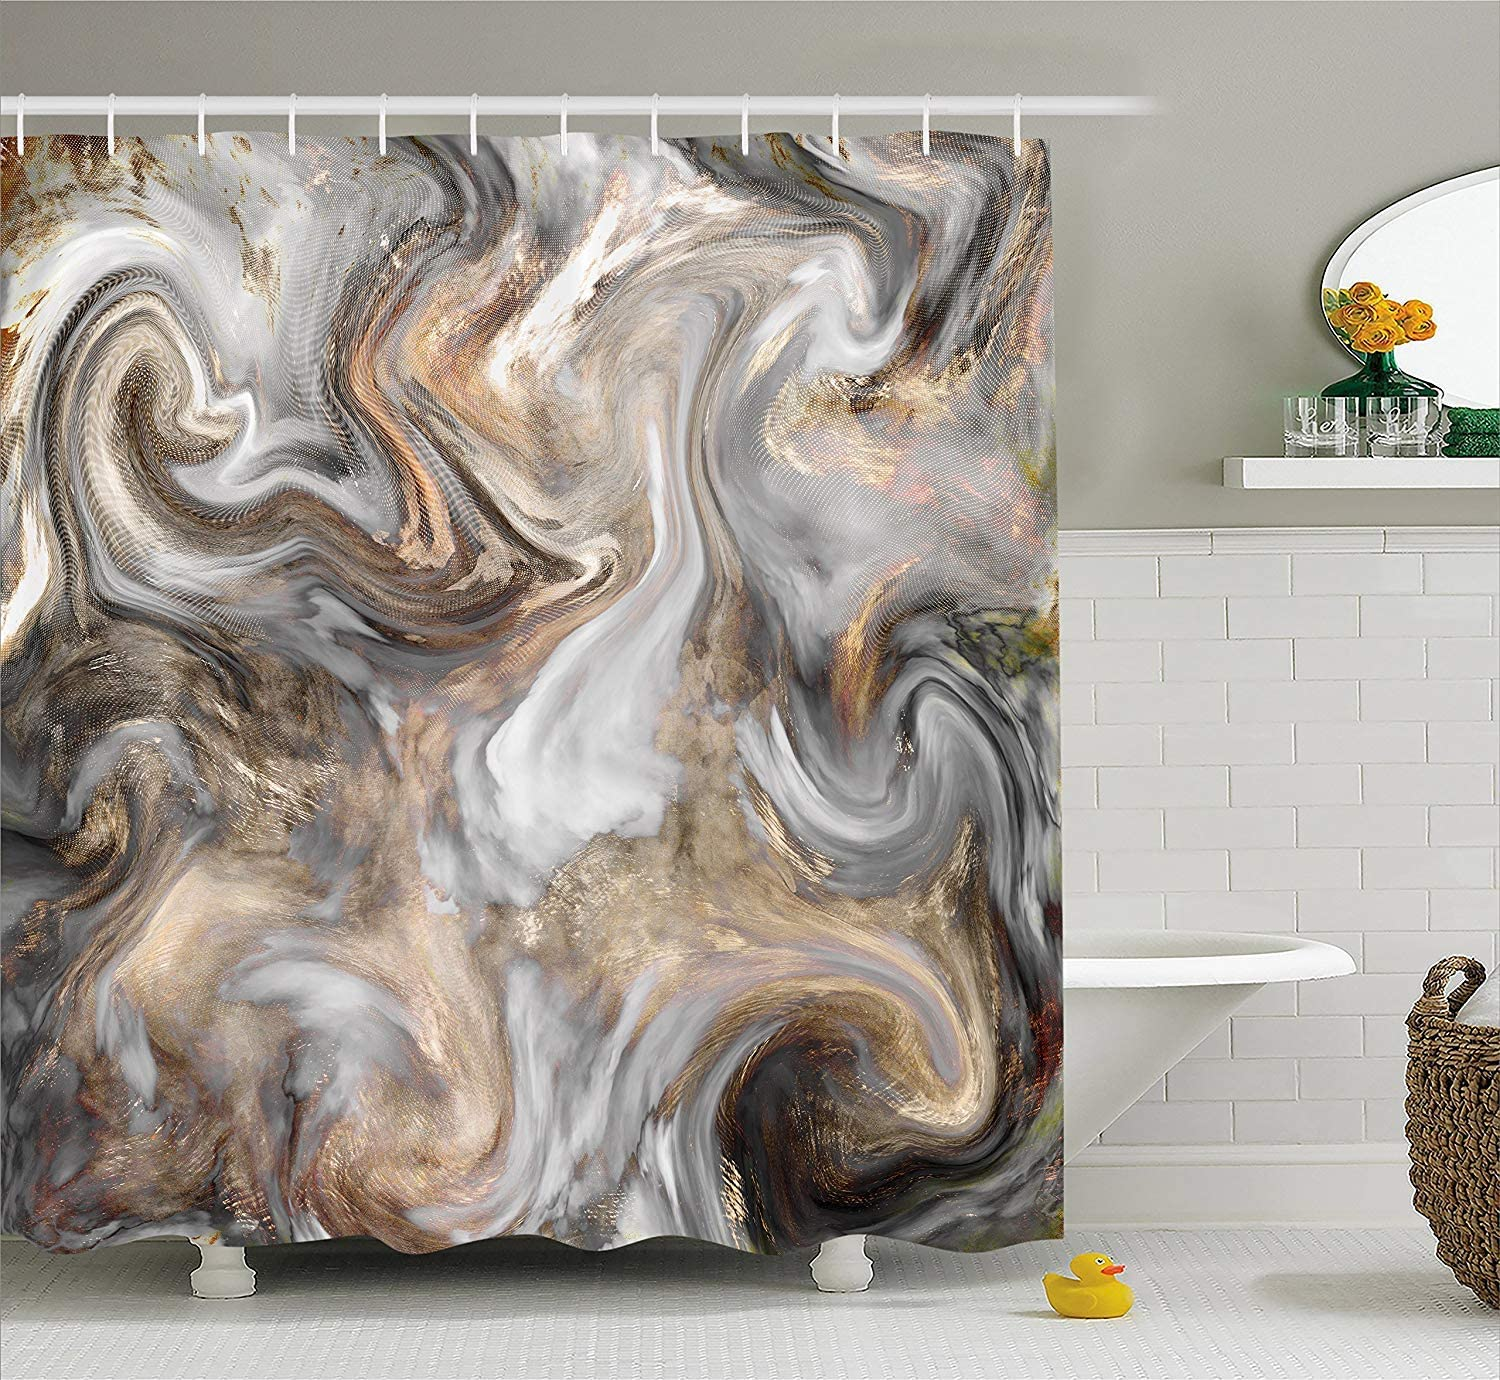 SPXUBZ Marble Retro Style Paintbrush Colors in Marbling Texture Watercolor Artwork Sand Brown Dust Light Grey Shower Curtain Waterproof Bathroom Decor Polyester Fabric Curtain Sets with Hooks